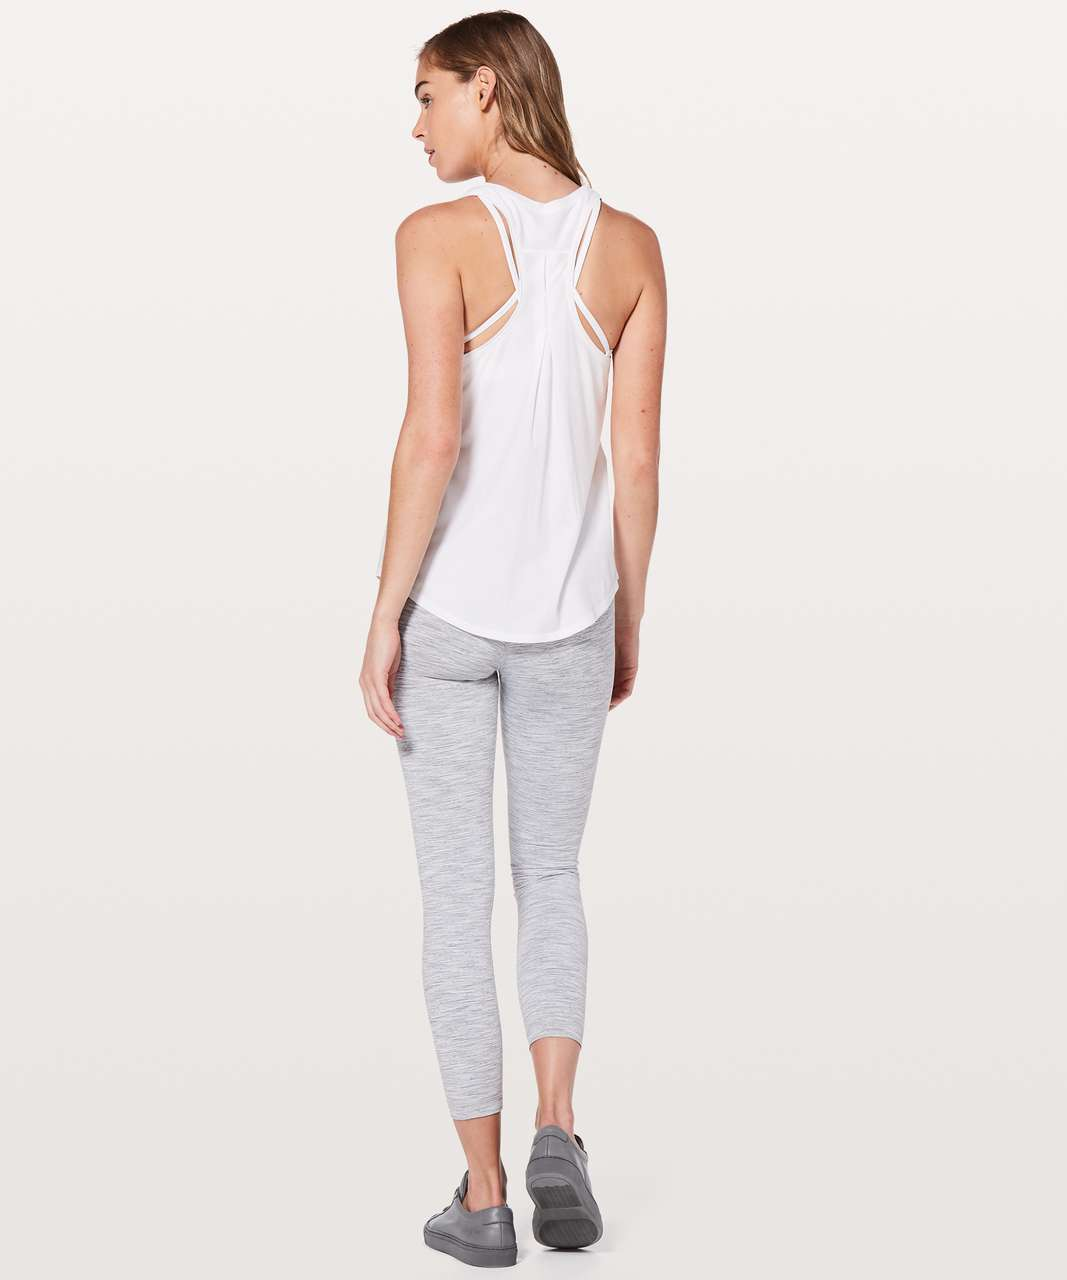 Lululemon Love Tank *Pleated - White (First Release)